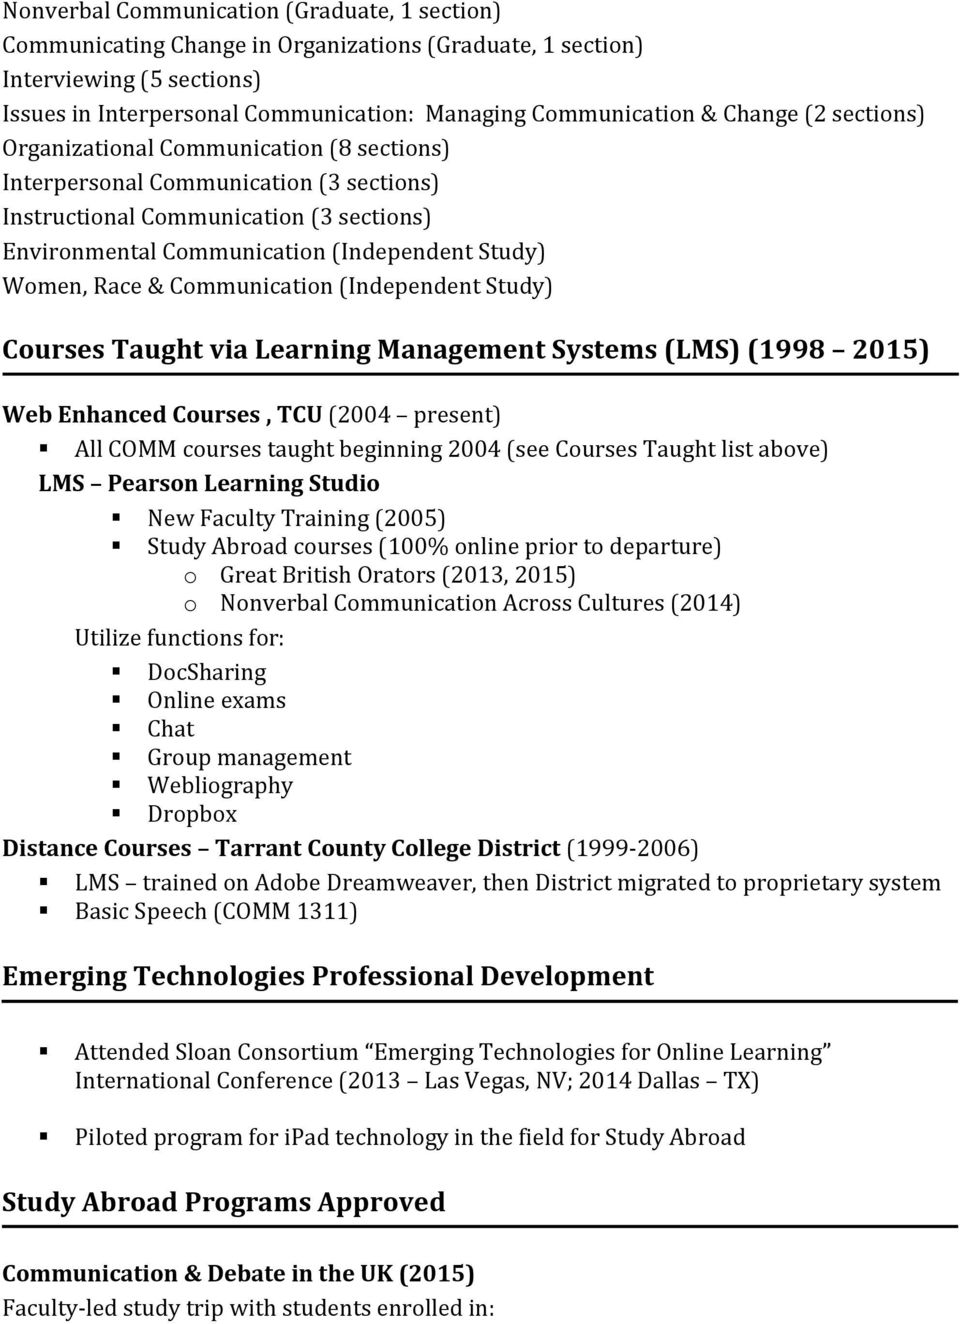 Race & Communication (Independent Study) Courses Taught via Learning Management Systems (LMS) (1998 2015) Web Enhanced Courses, TCU (2004 present) All COMM courses taught beginning 2004 (see Courses